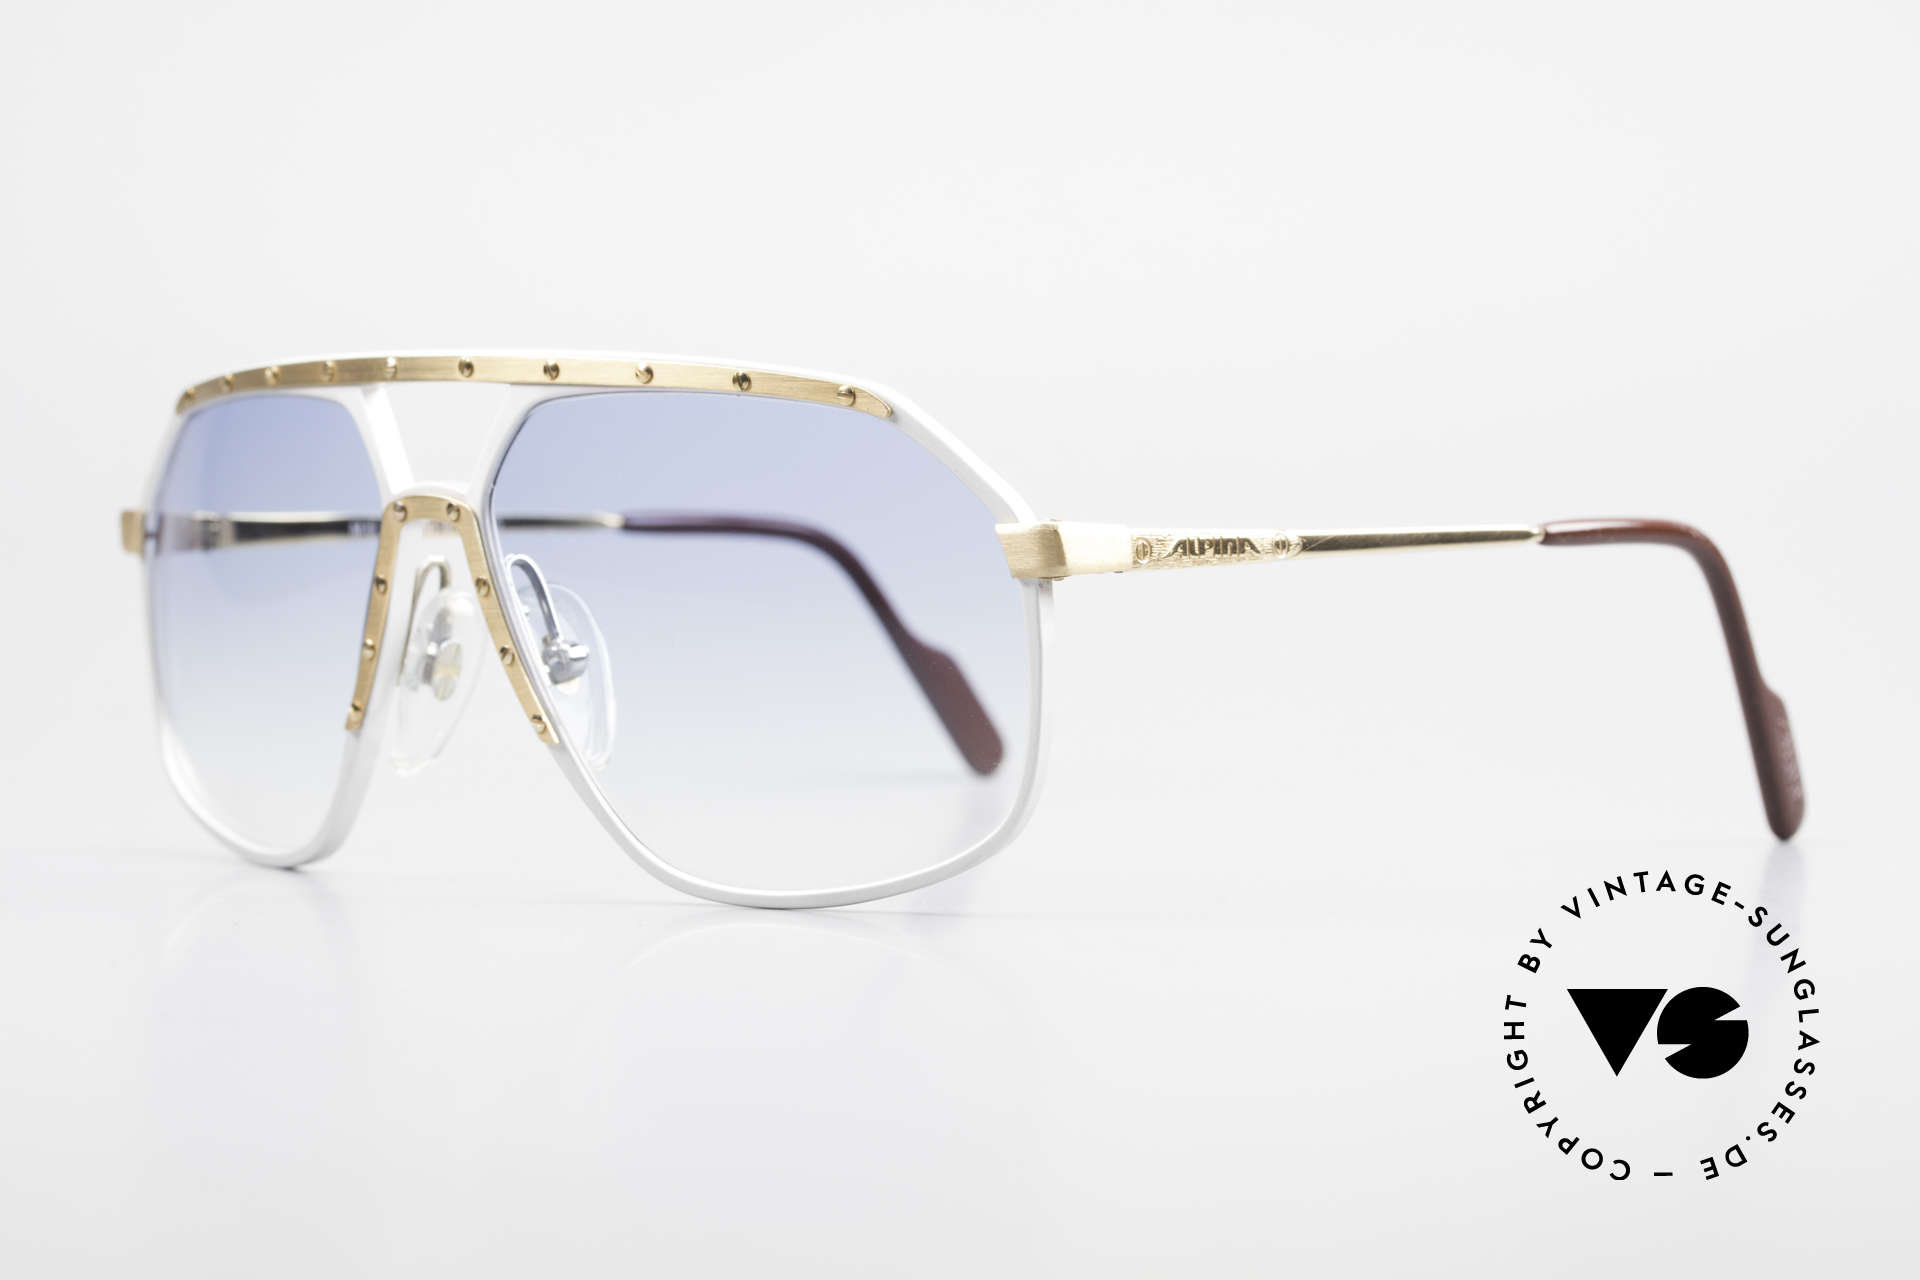 Alpina M6 Iconic 80's Sunglass Classic, famous for the 'W.Germany' frame and the screws, Made for Men